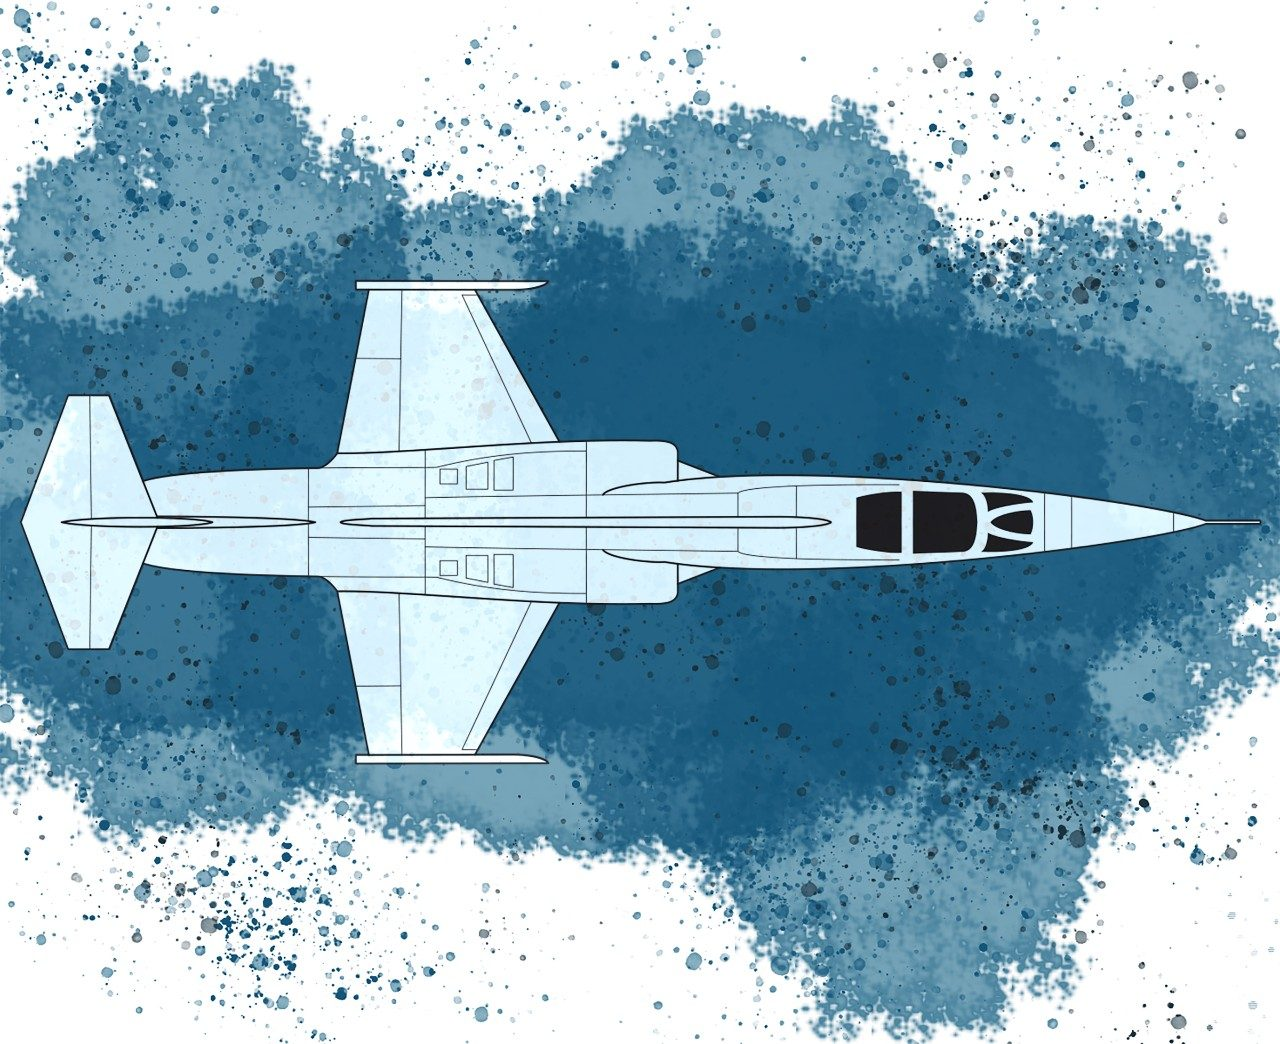 Second Generation Jet Fighter